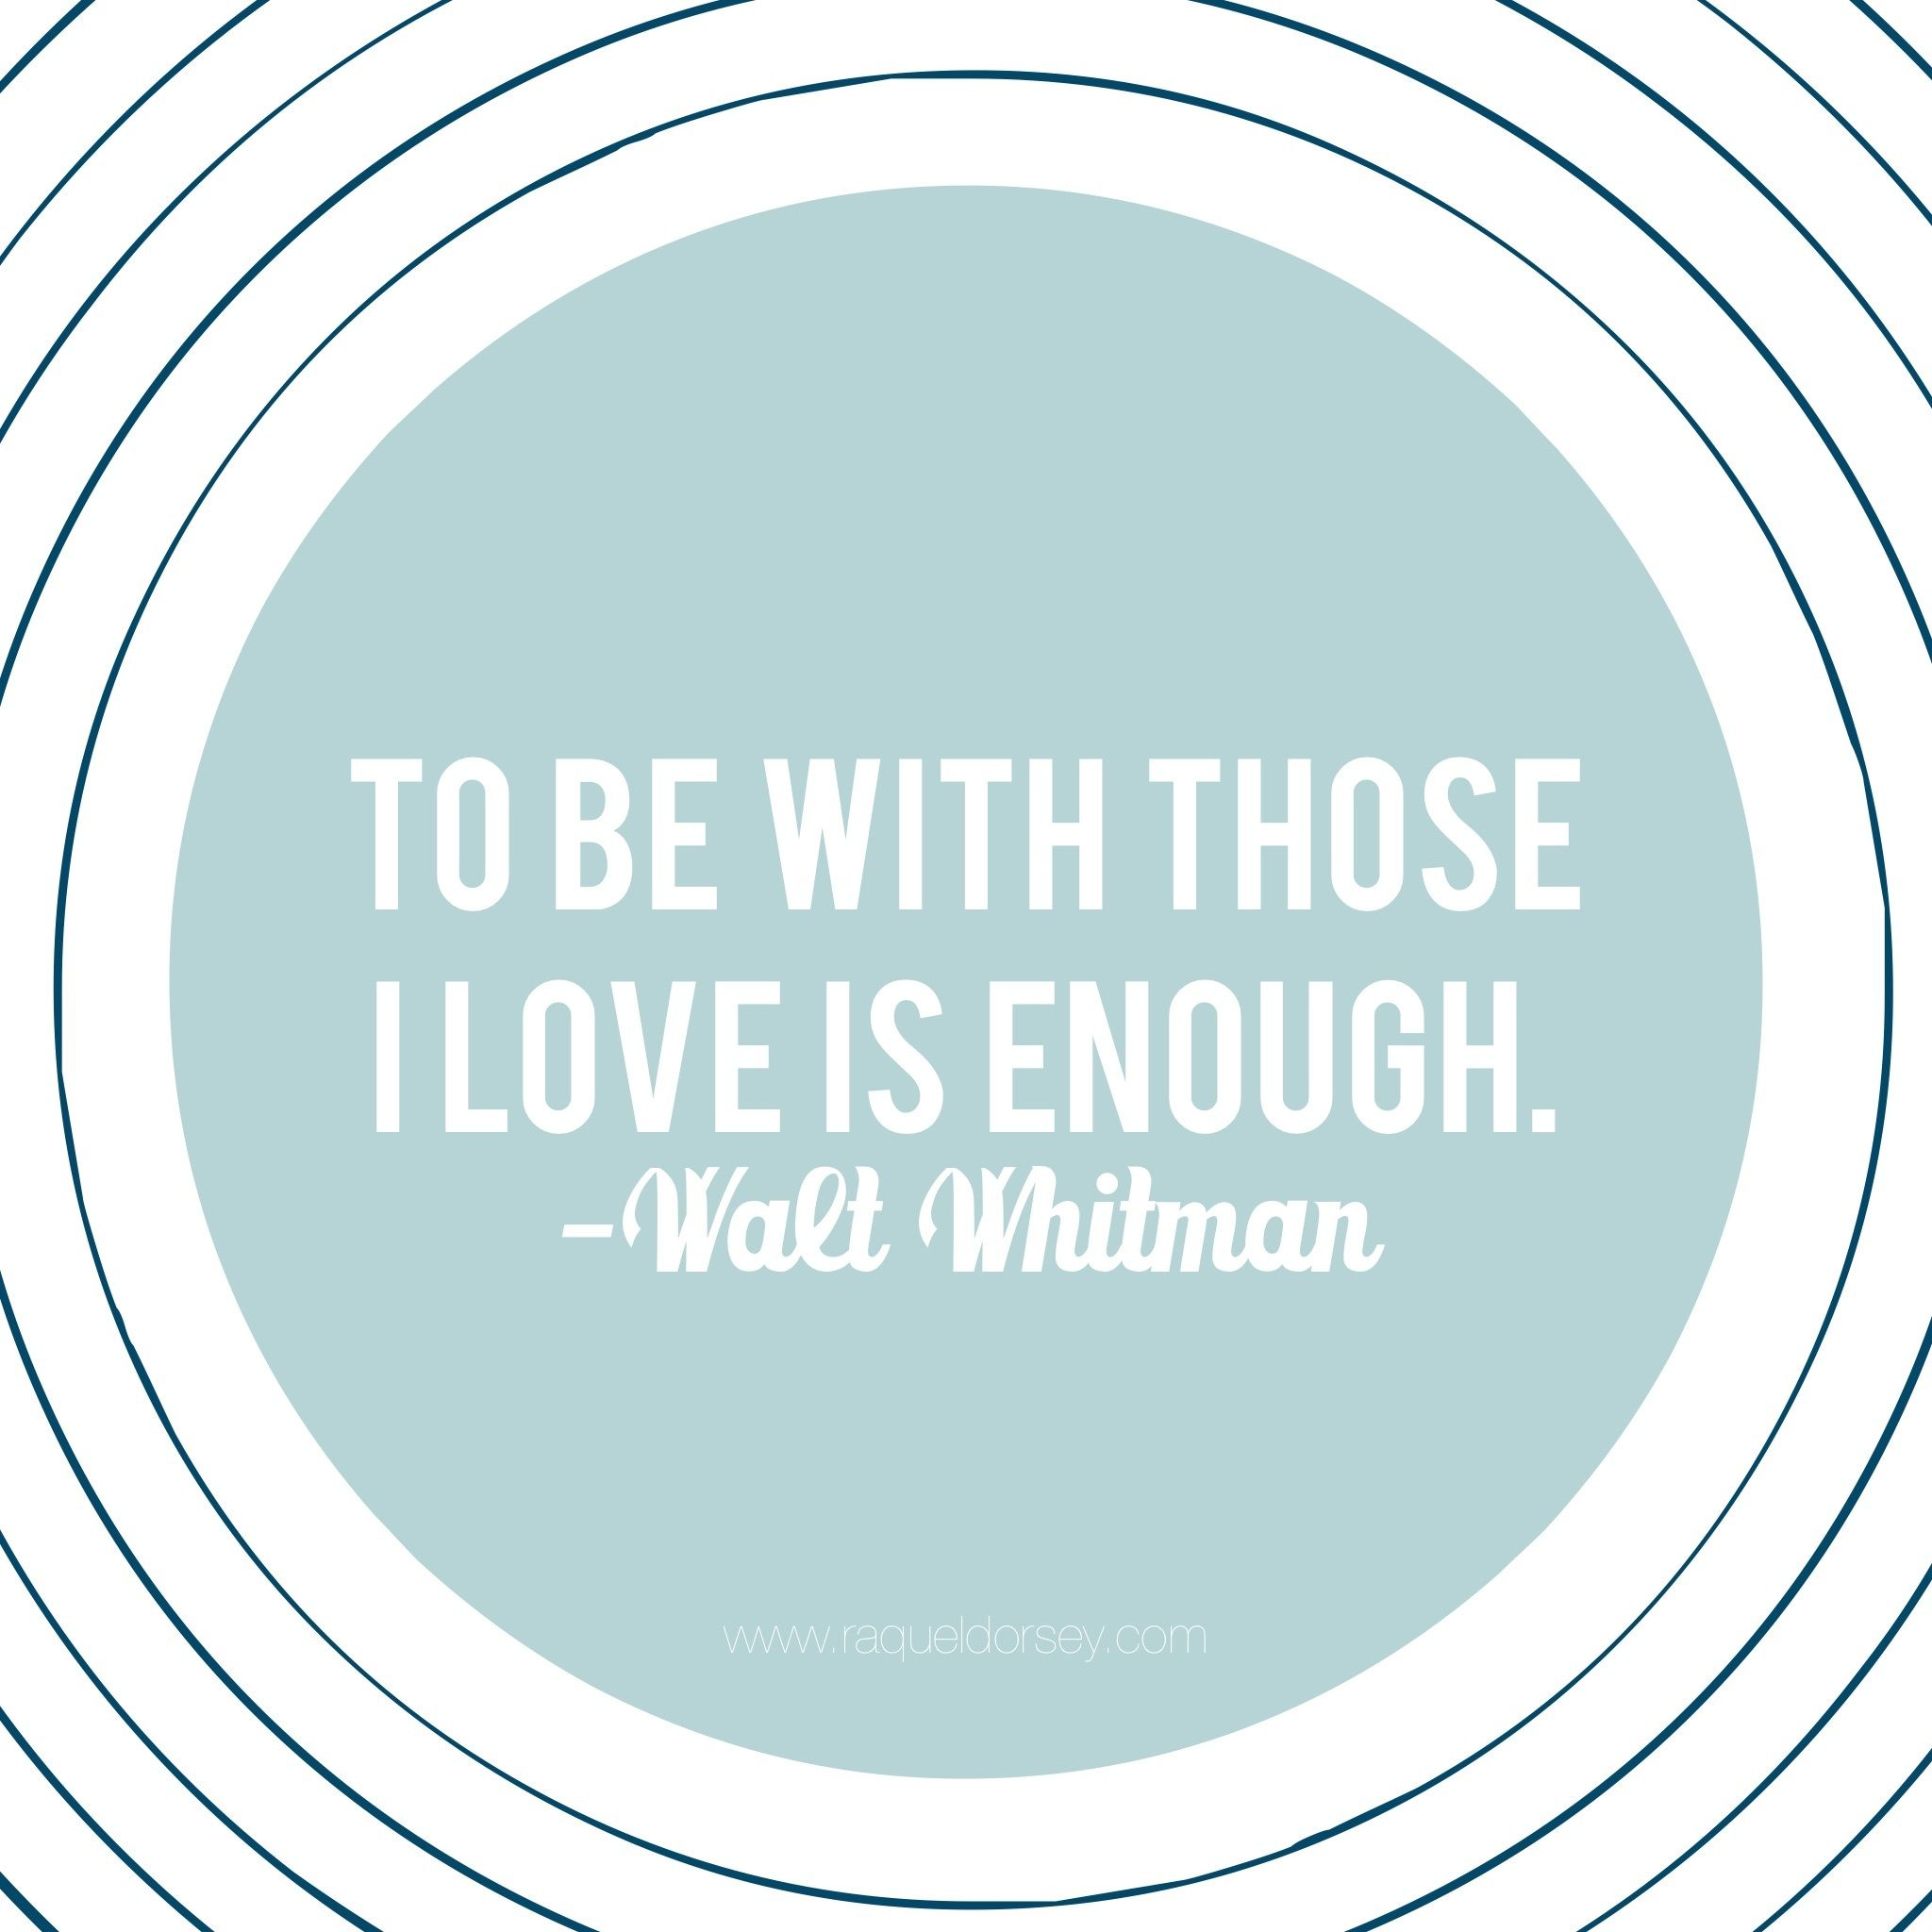 """To be with those I love is enough."" - Walt Whitman Quote"